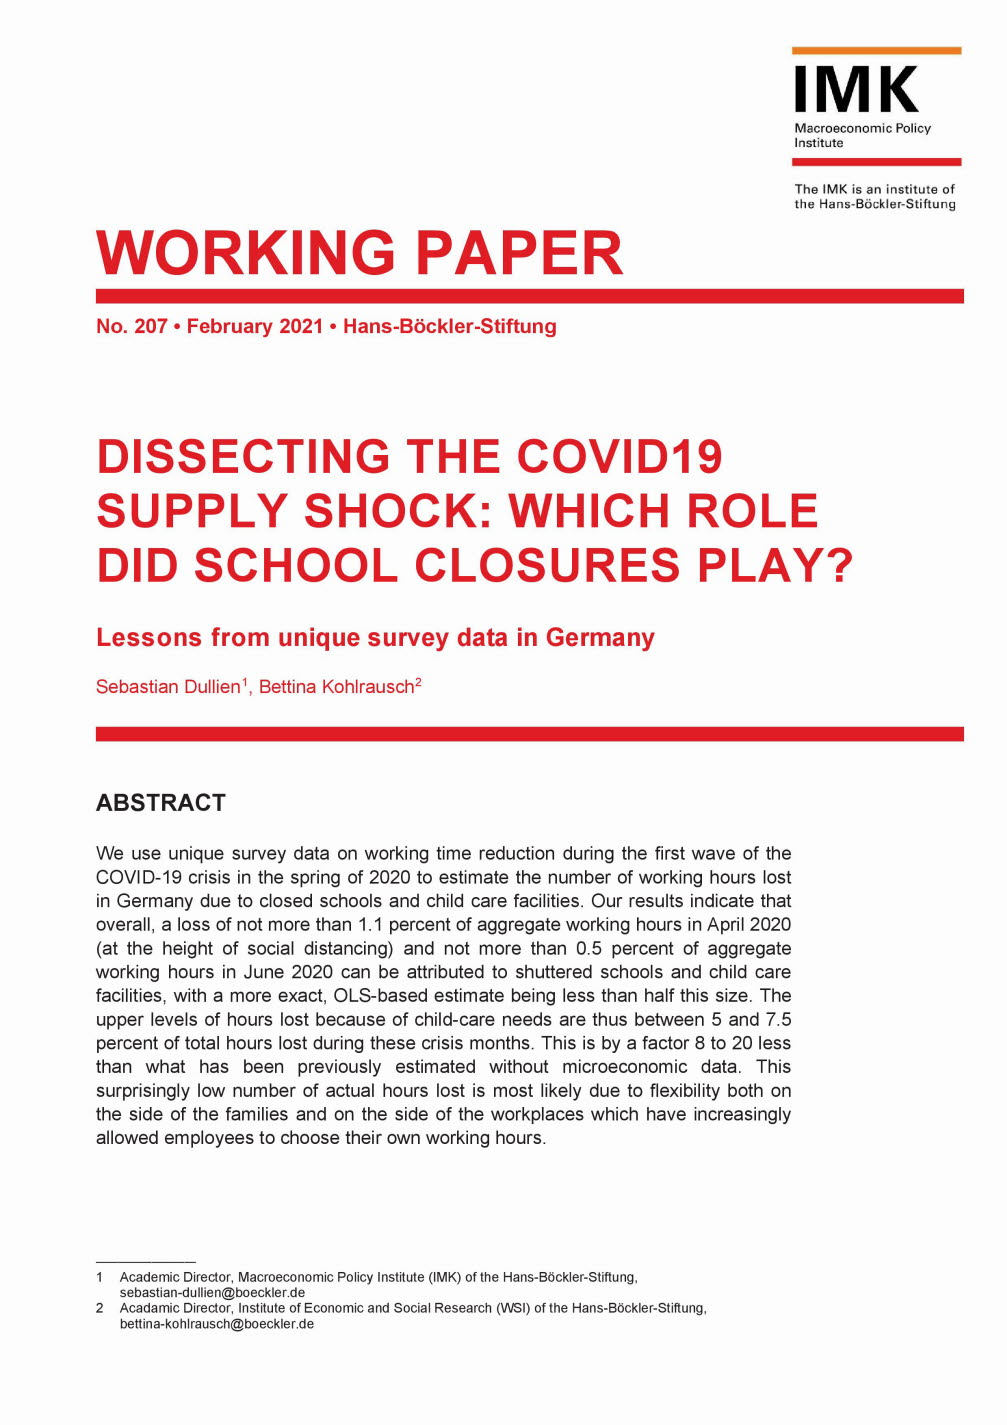 Dissecting the COVID19 supply shock: Which role did school closures play?